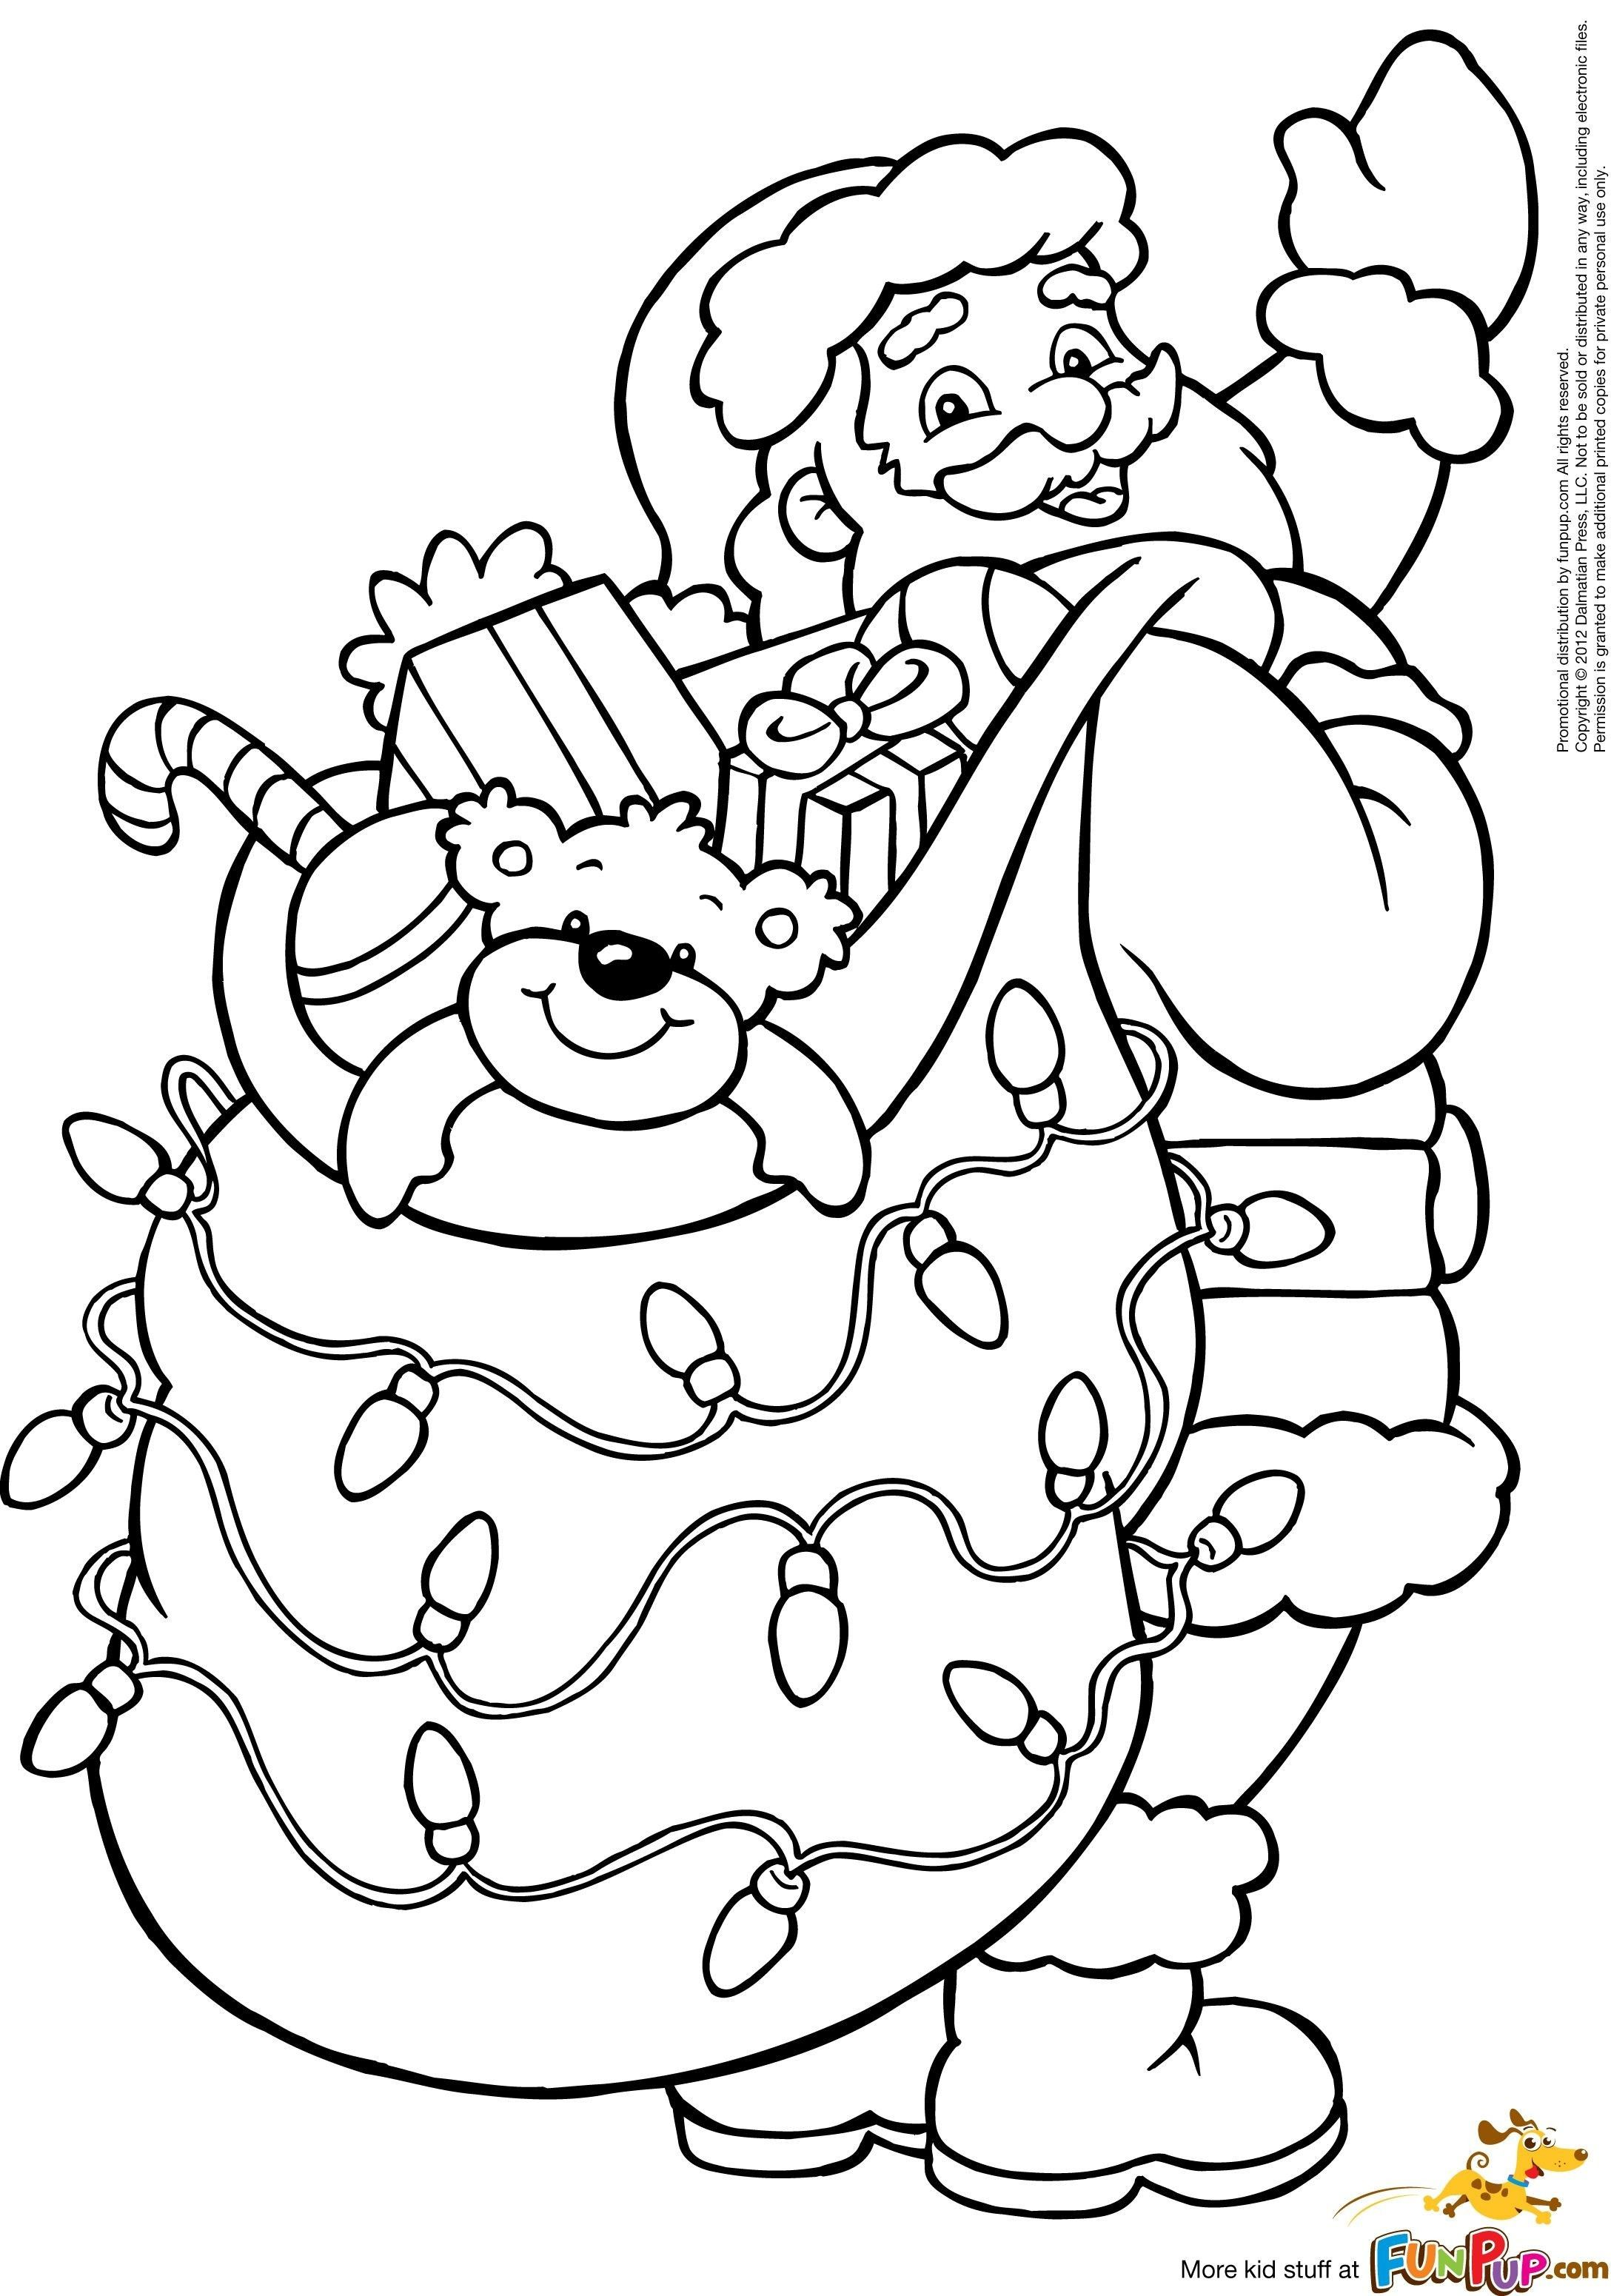 Santa Clause Wants To Be Coloured In Print This For Your Child To